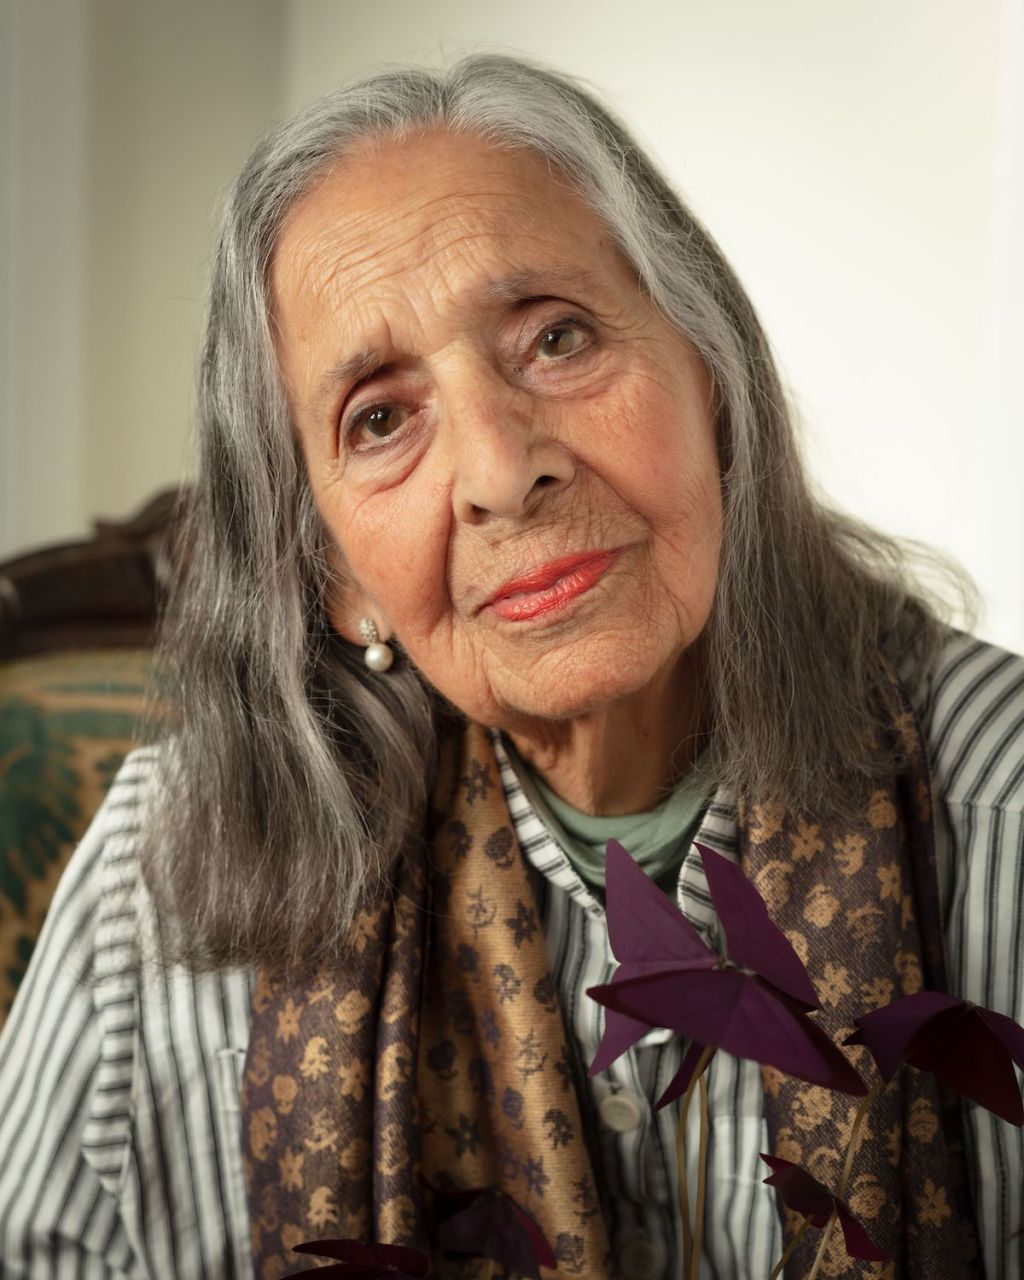 Luchita Hurtado, Influential Painter Who Created Dizzying Images of Women and Nature, Is Dead at 99